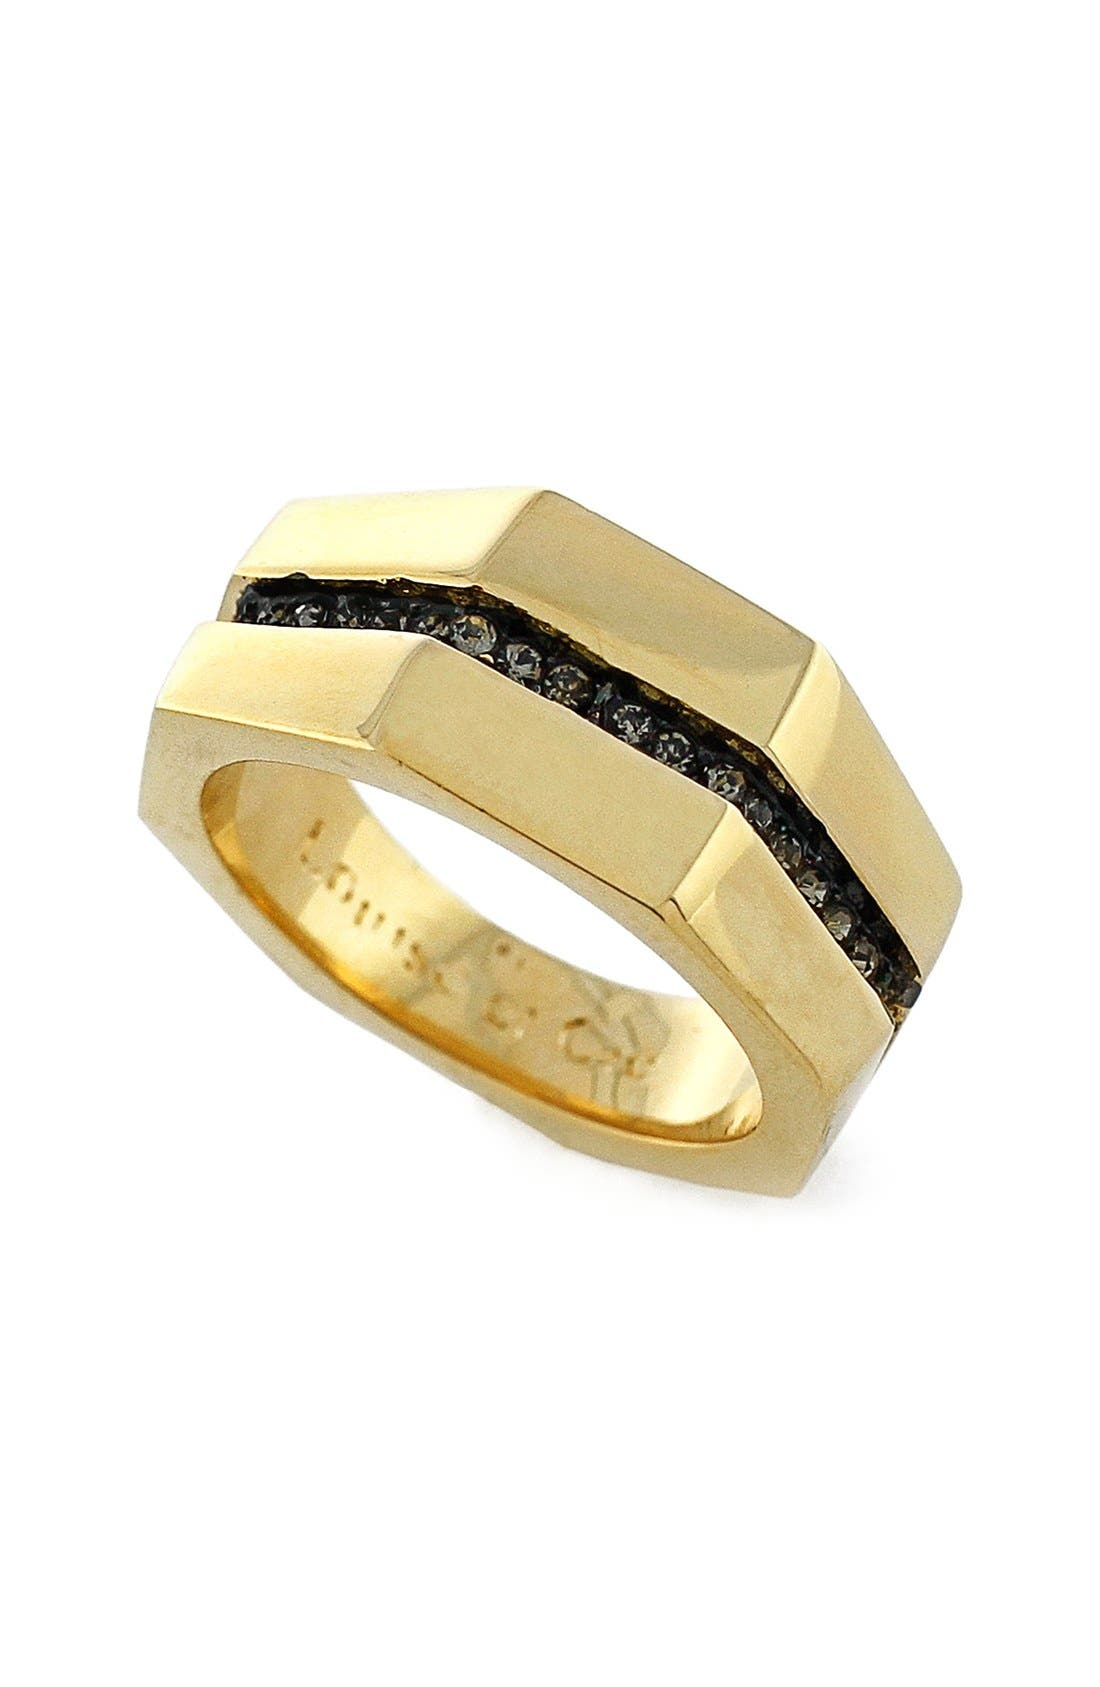 Main Image - Louise et Cie 'Kammenstrat' Split Pavé Band Ring